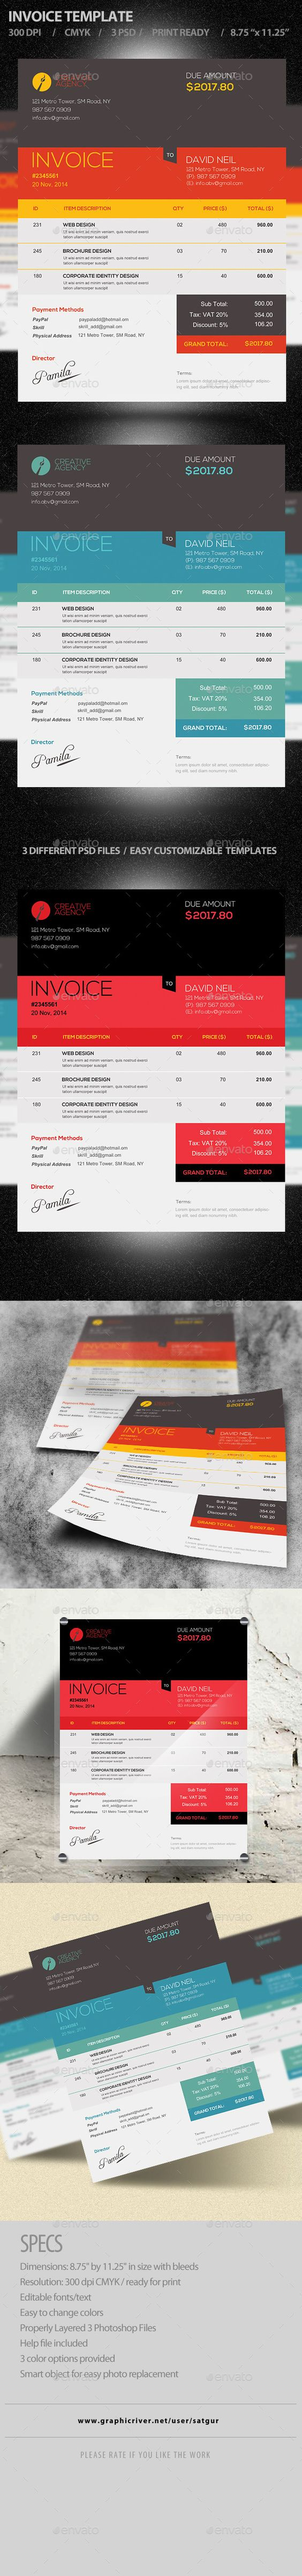 photoshop, invoice template and templates on pinterest, Invoice examples